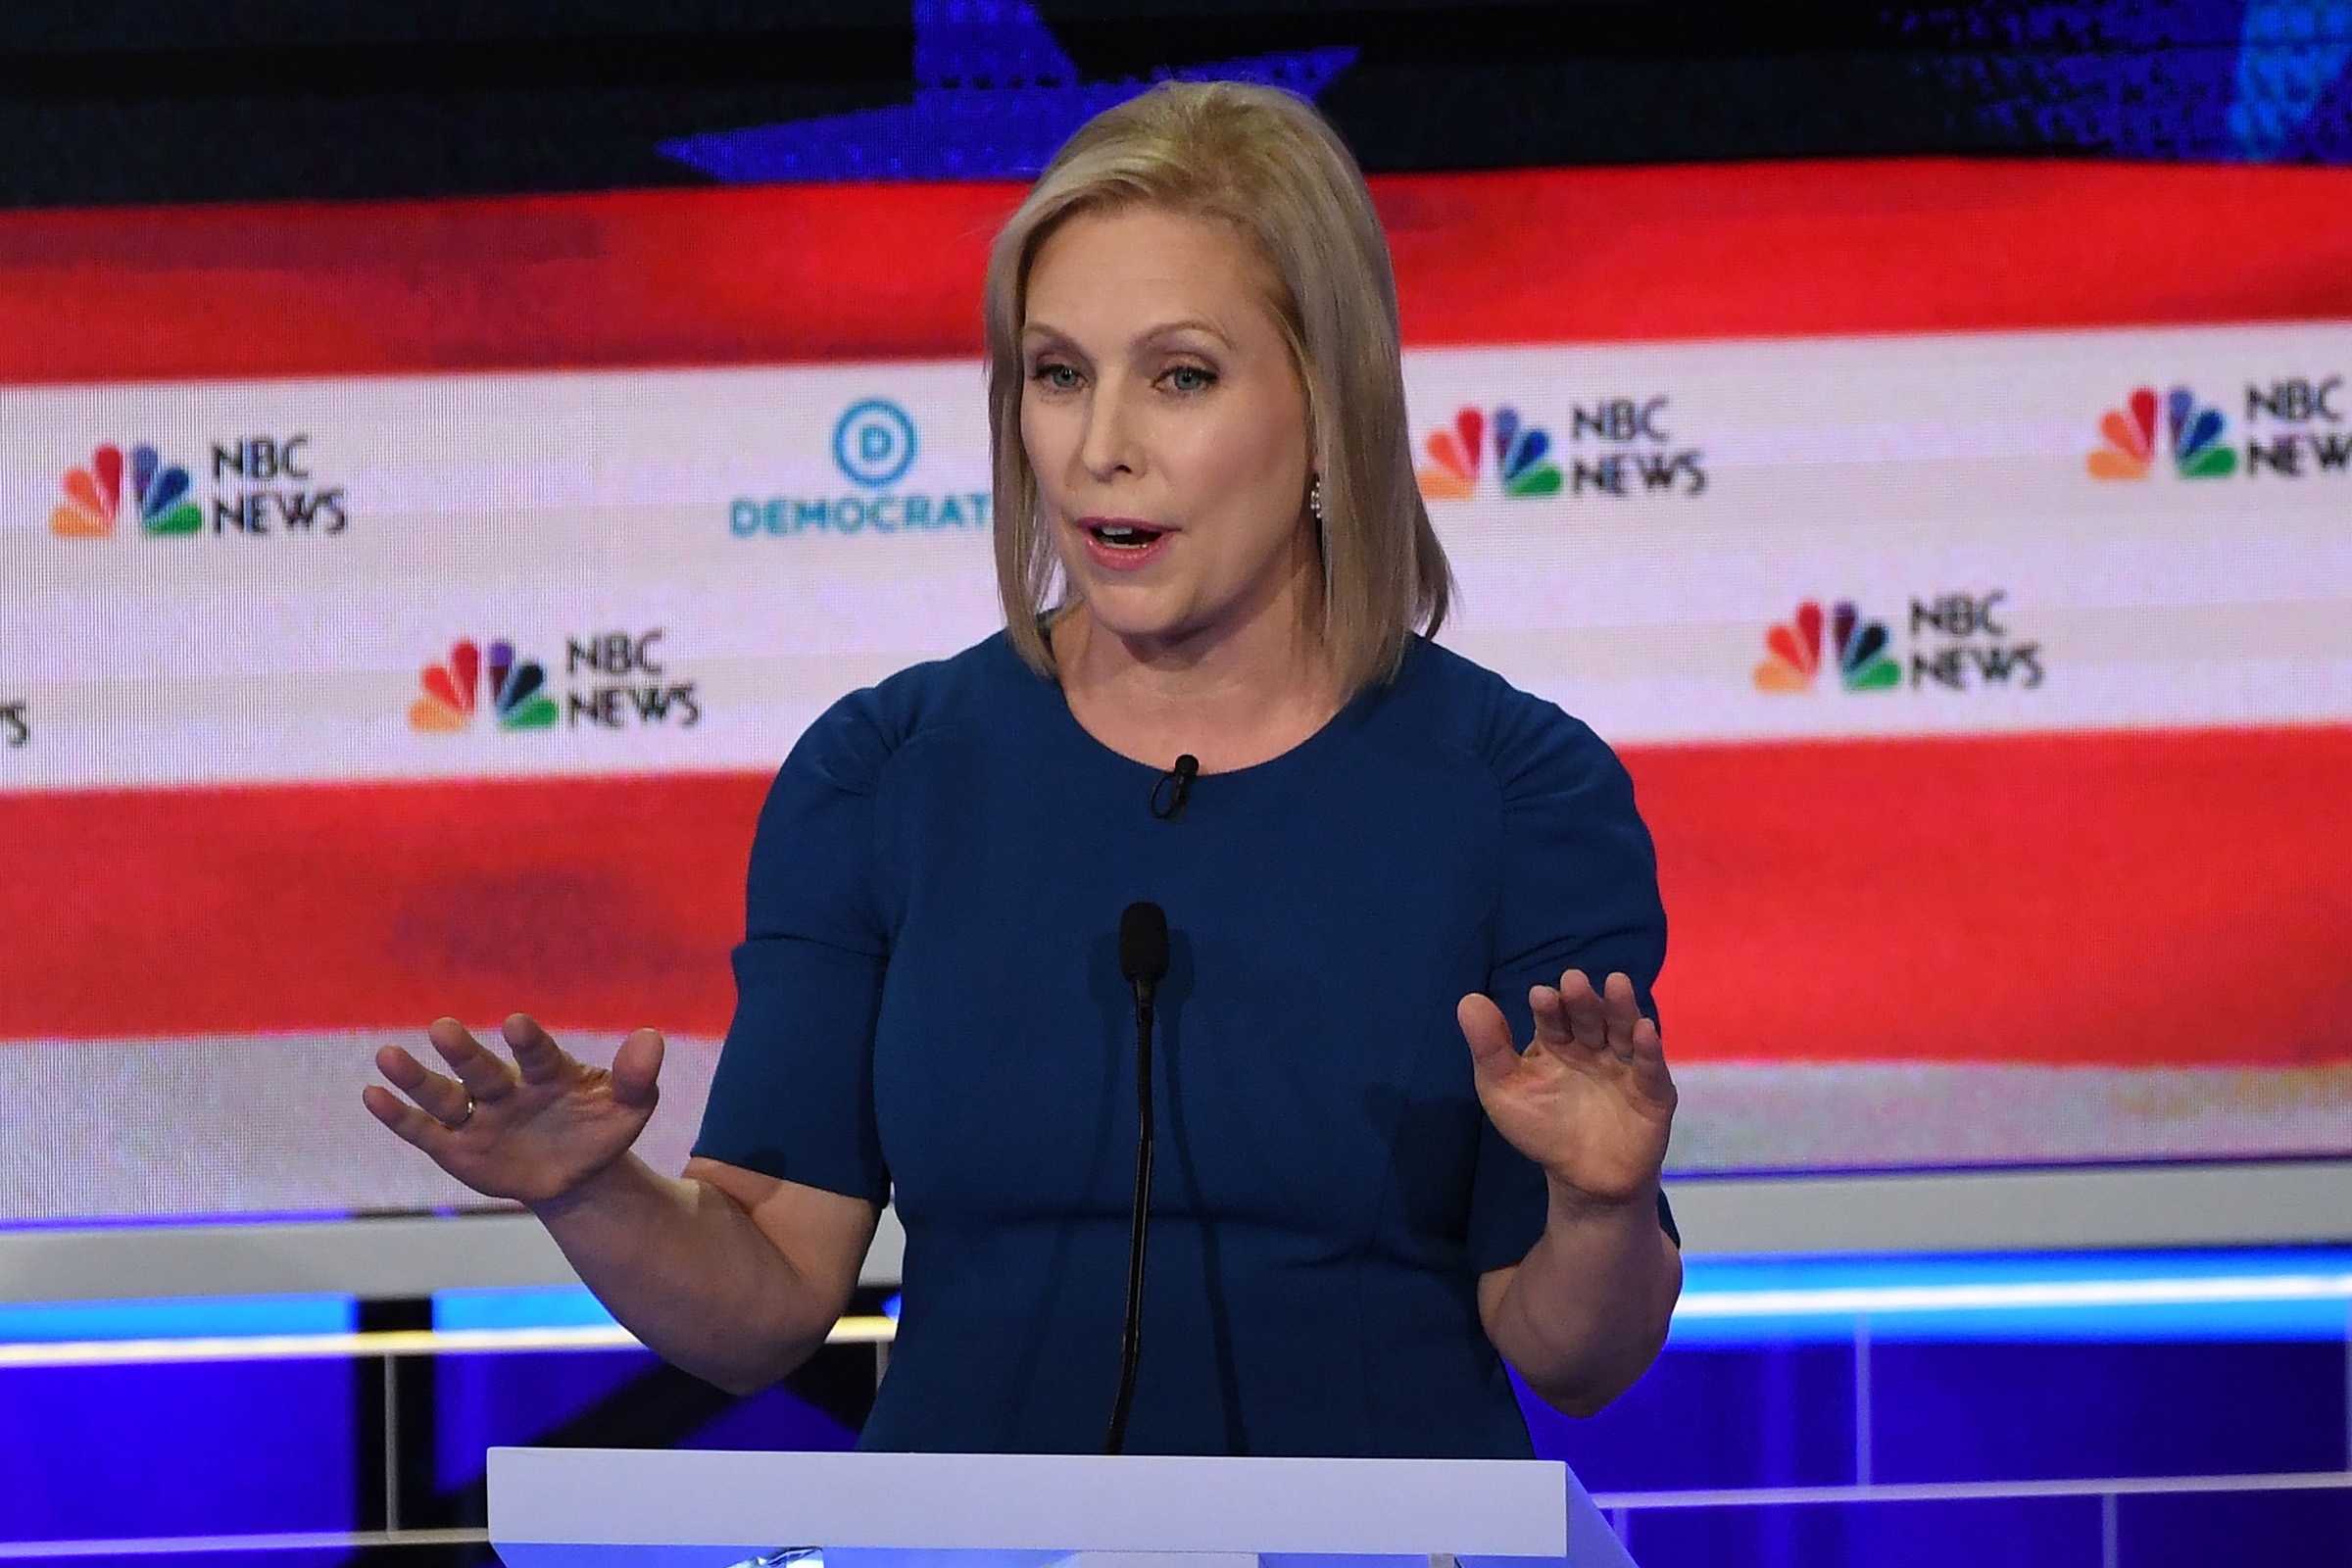 Democratic presidential hopeful US Senator for New York Kirsten Gillibrand speaks during the second Democratic primary debate of the 2020 presidential campaign season